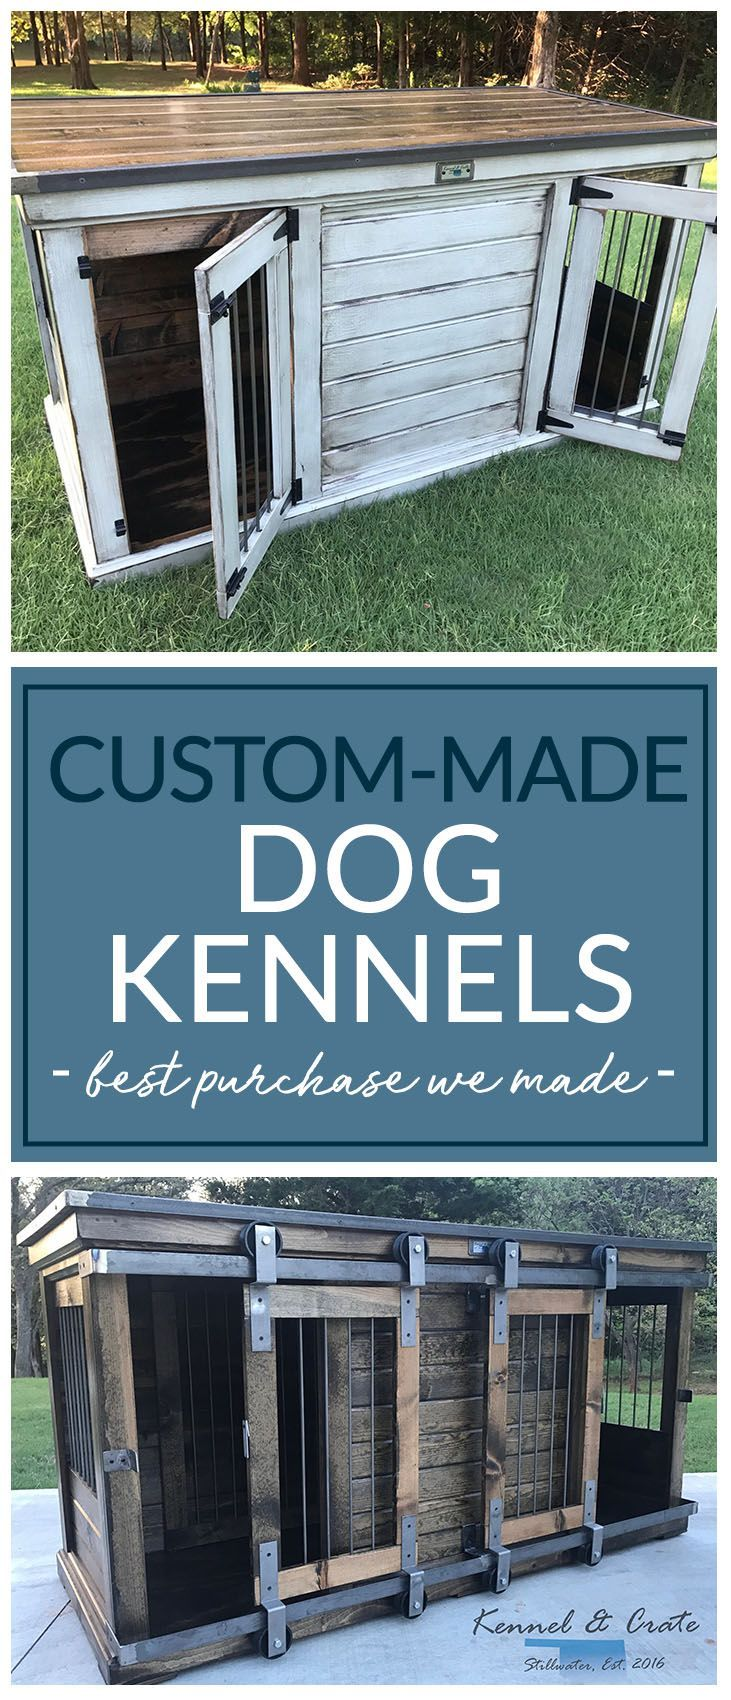 Kennel & Crate's double kennels feature an interior door that allows the space to be divided into two separate kennels for one dog or two! Replace your wire crates with architecturally sound pieces of furniture. #Kennelandcrate #Indoorkennels #Dog #Dogcrate #Funtionalfurniture #Kennelforyourbusiness